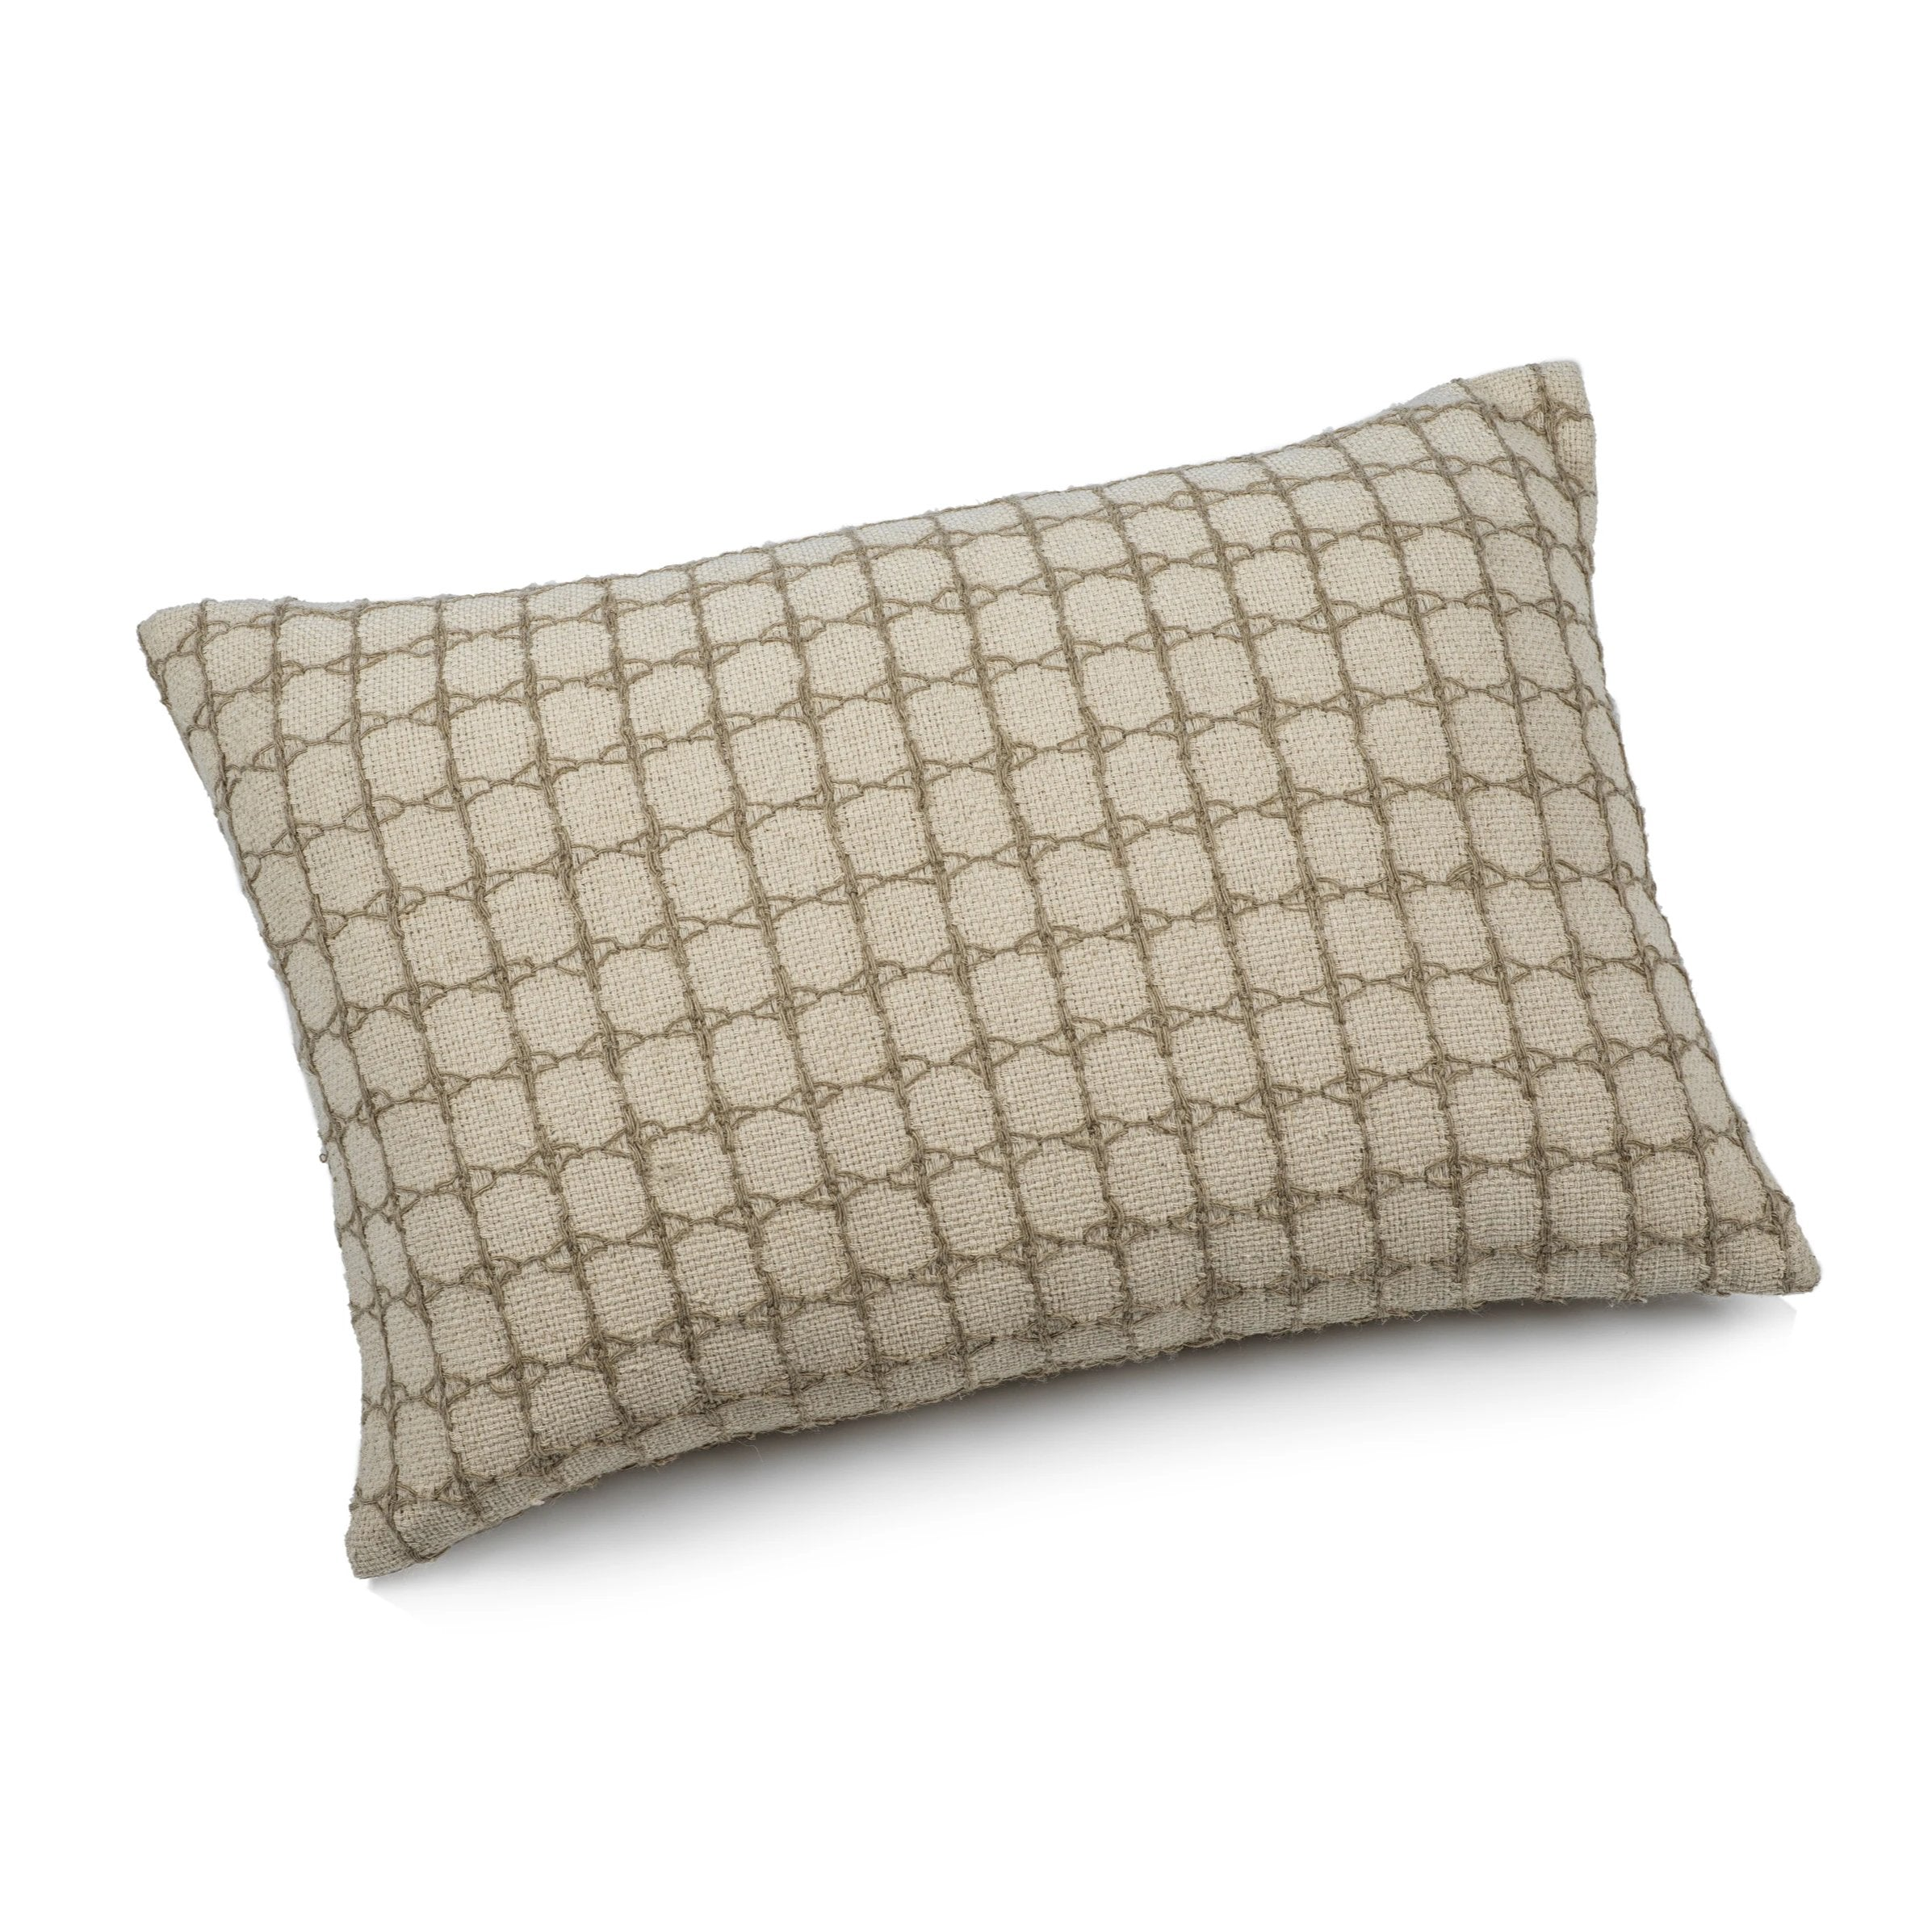 Canaria Linen Interlacing Throw Pillow - 16